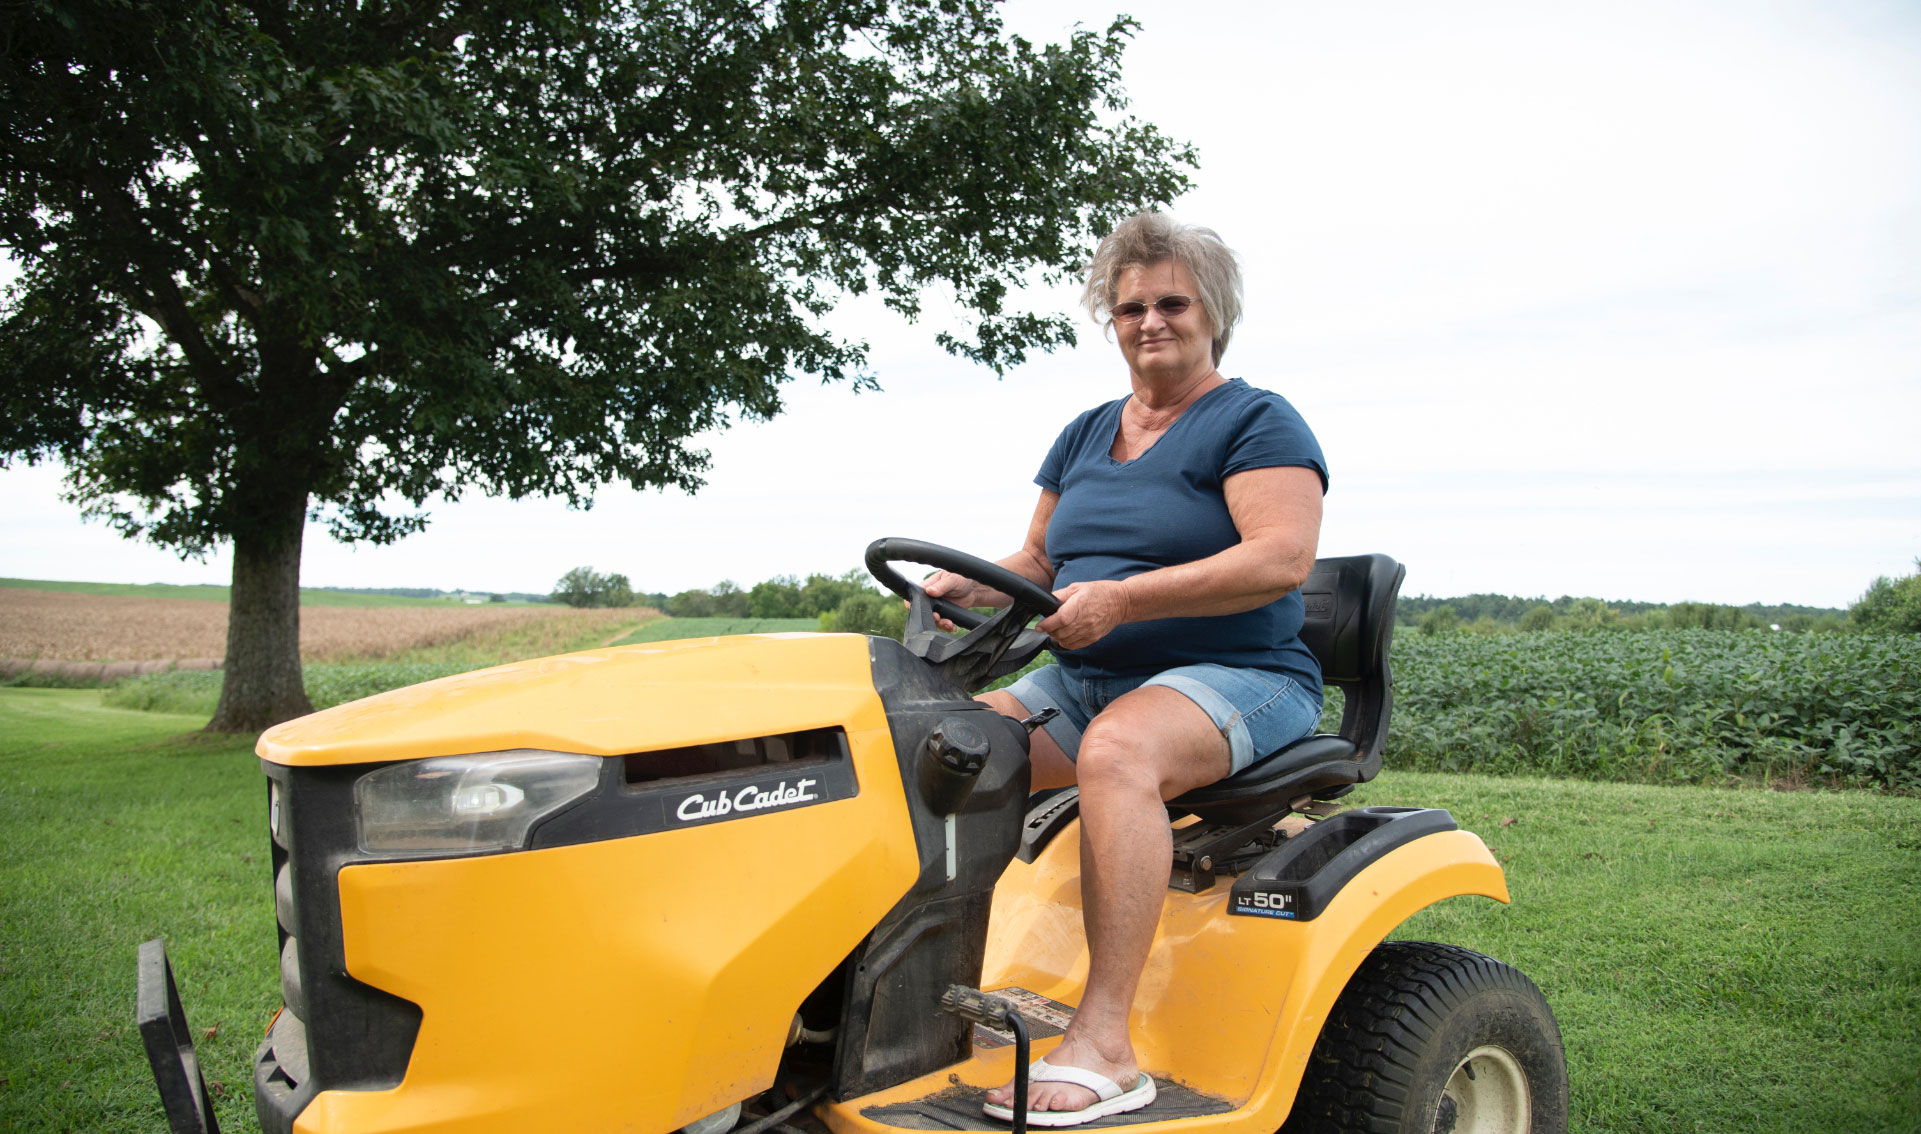 A photo of Charlotte smiling at the camera as she drives a yellow riding lawn mower.